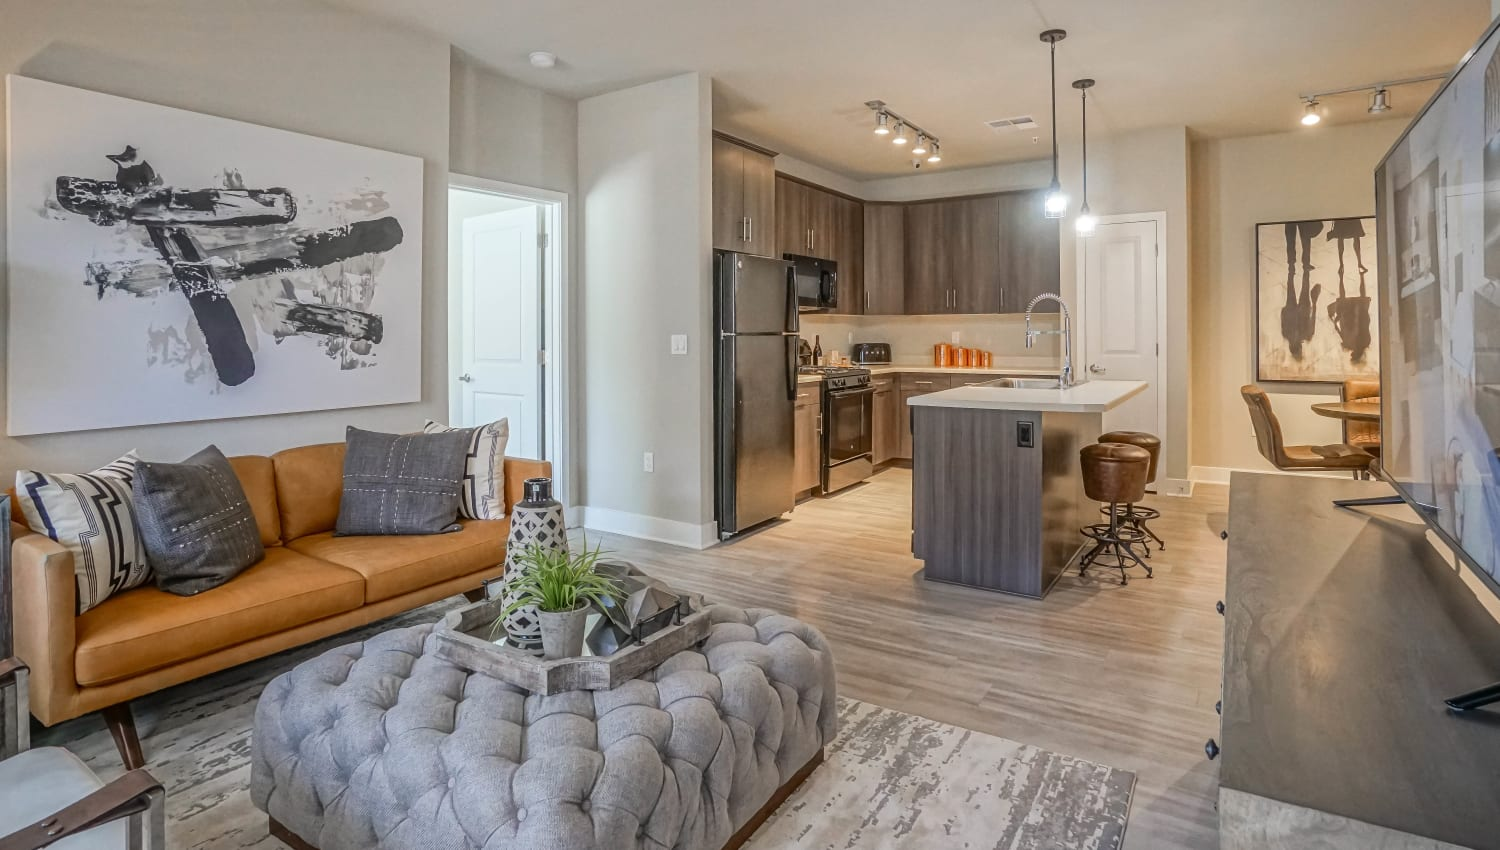 Well-furnished living area with beautiful hardwood flooring in the open-concept layout of a model townhome at Olympus Northpoint in Albuquerque, New Mexico